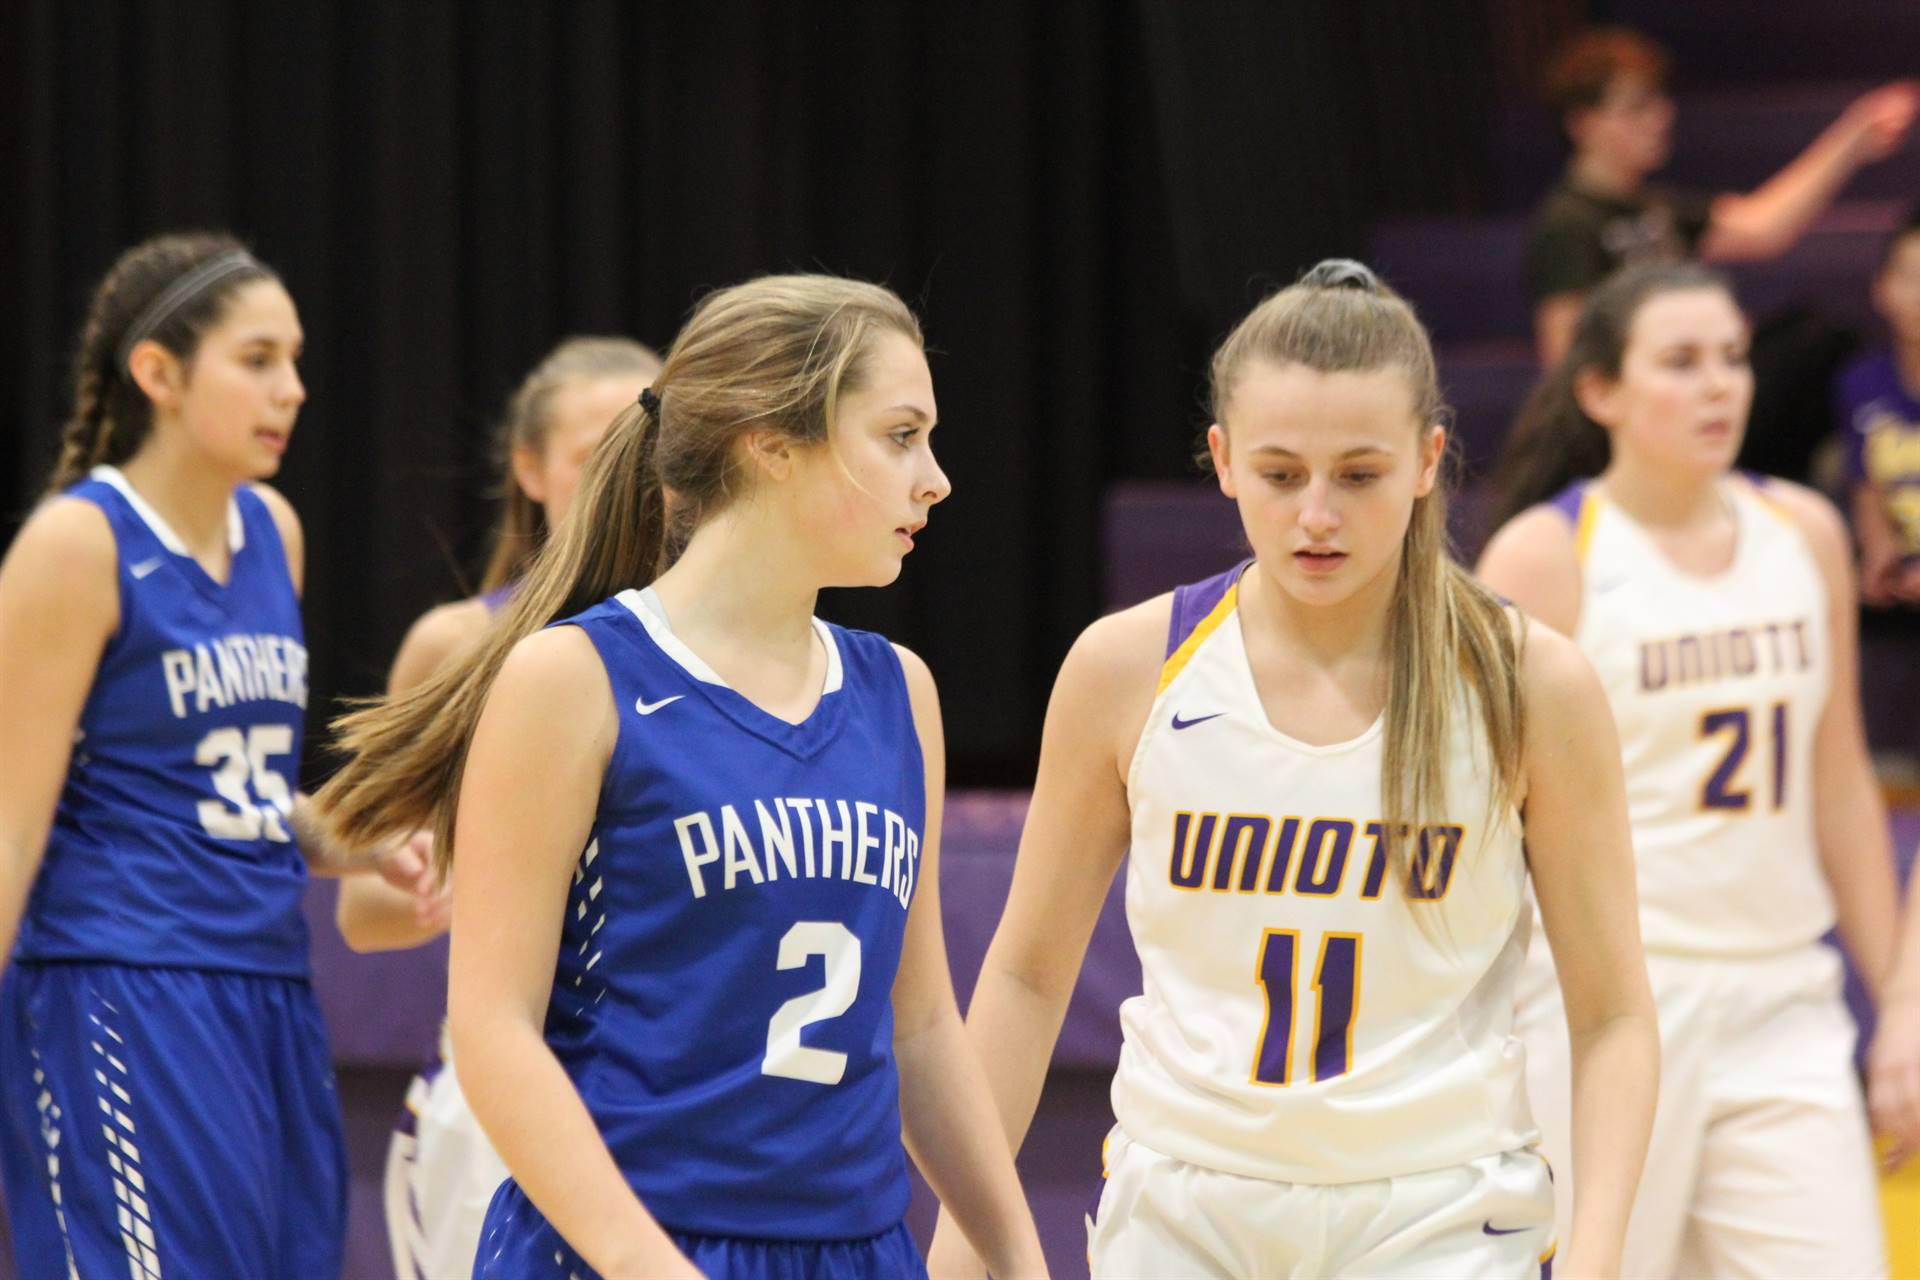 SE Girls vs Unioto